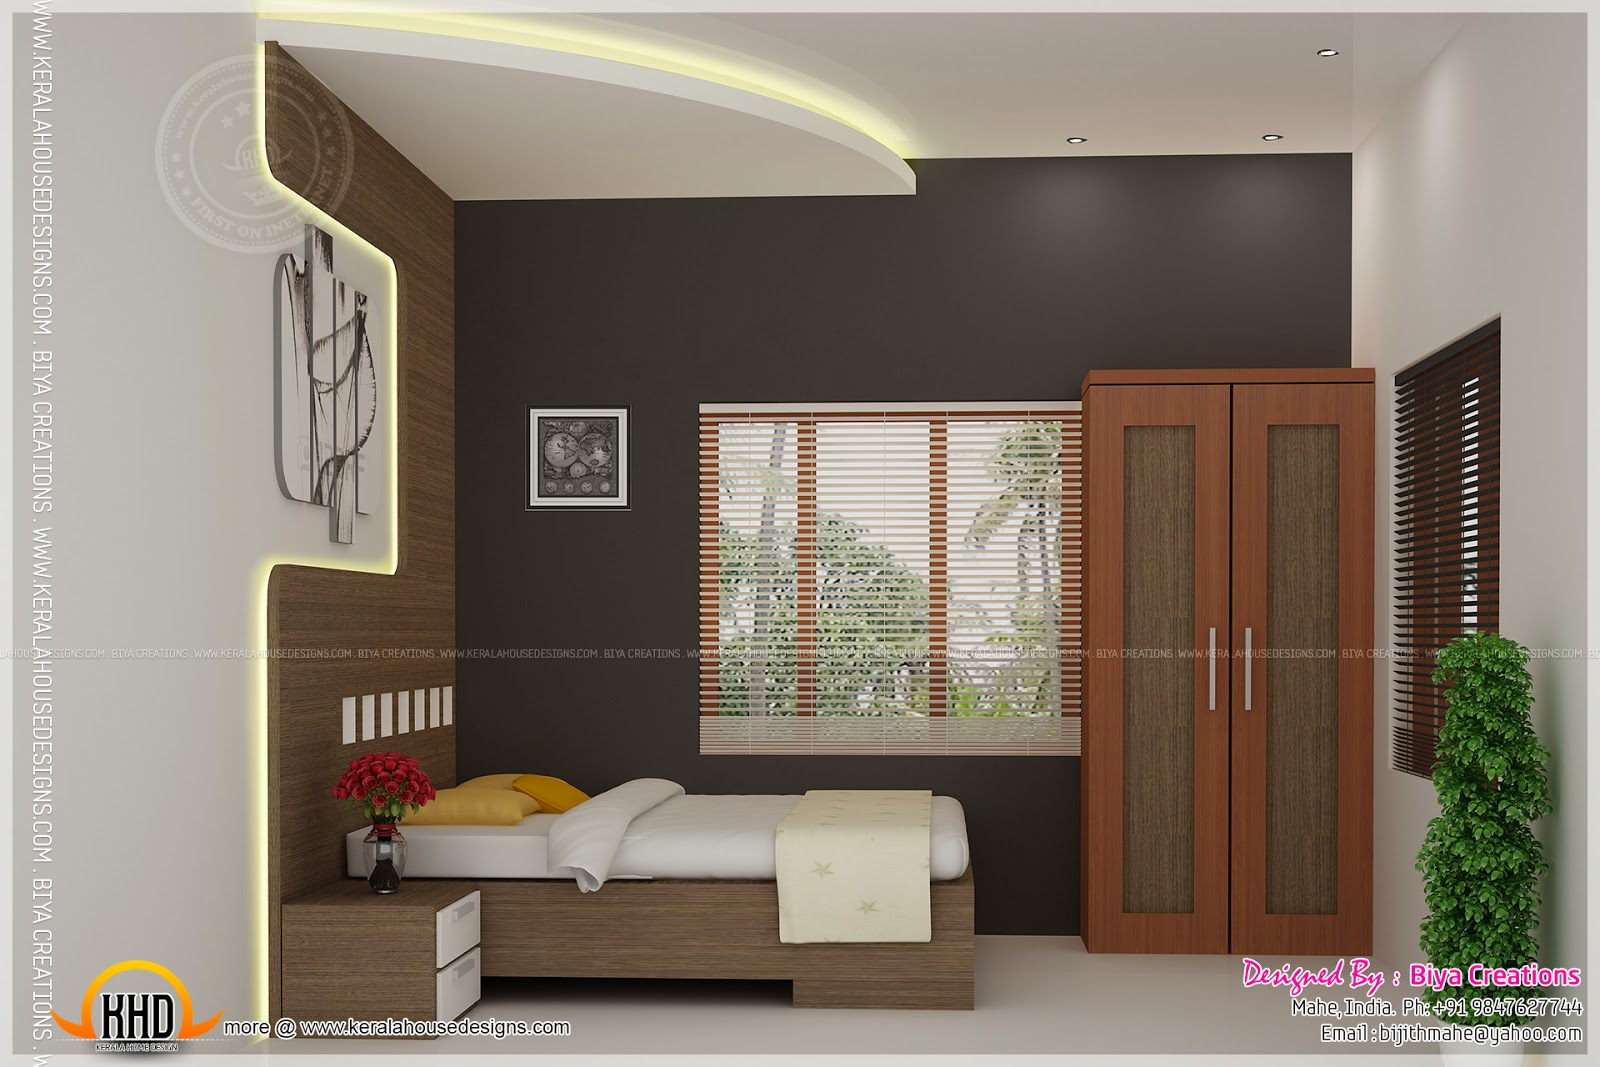 beautiful 3d rendering of bedroom and kitchen interiors designed by